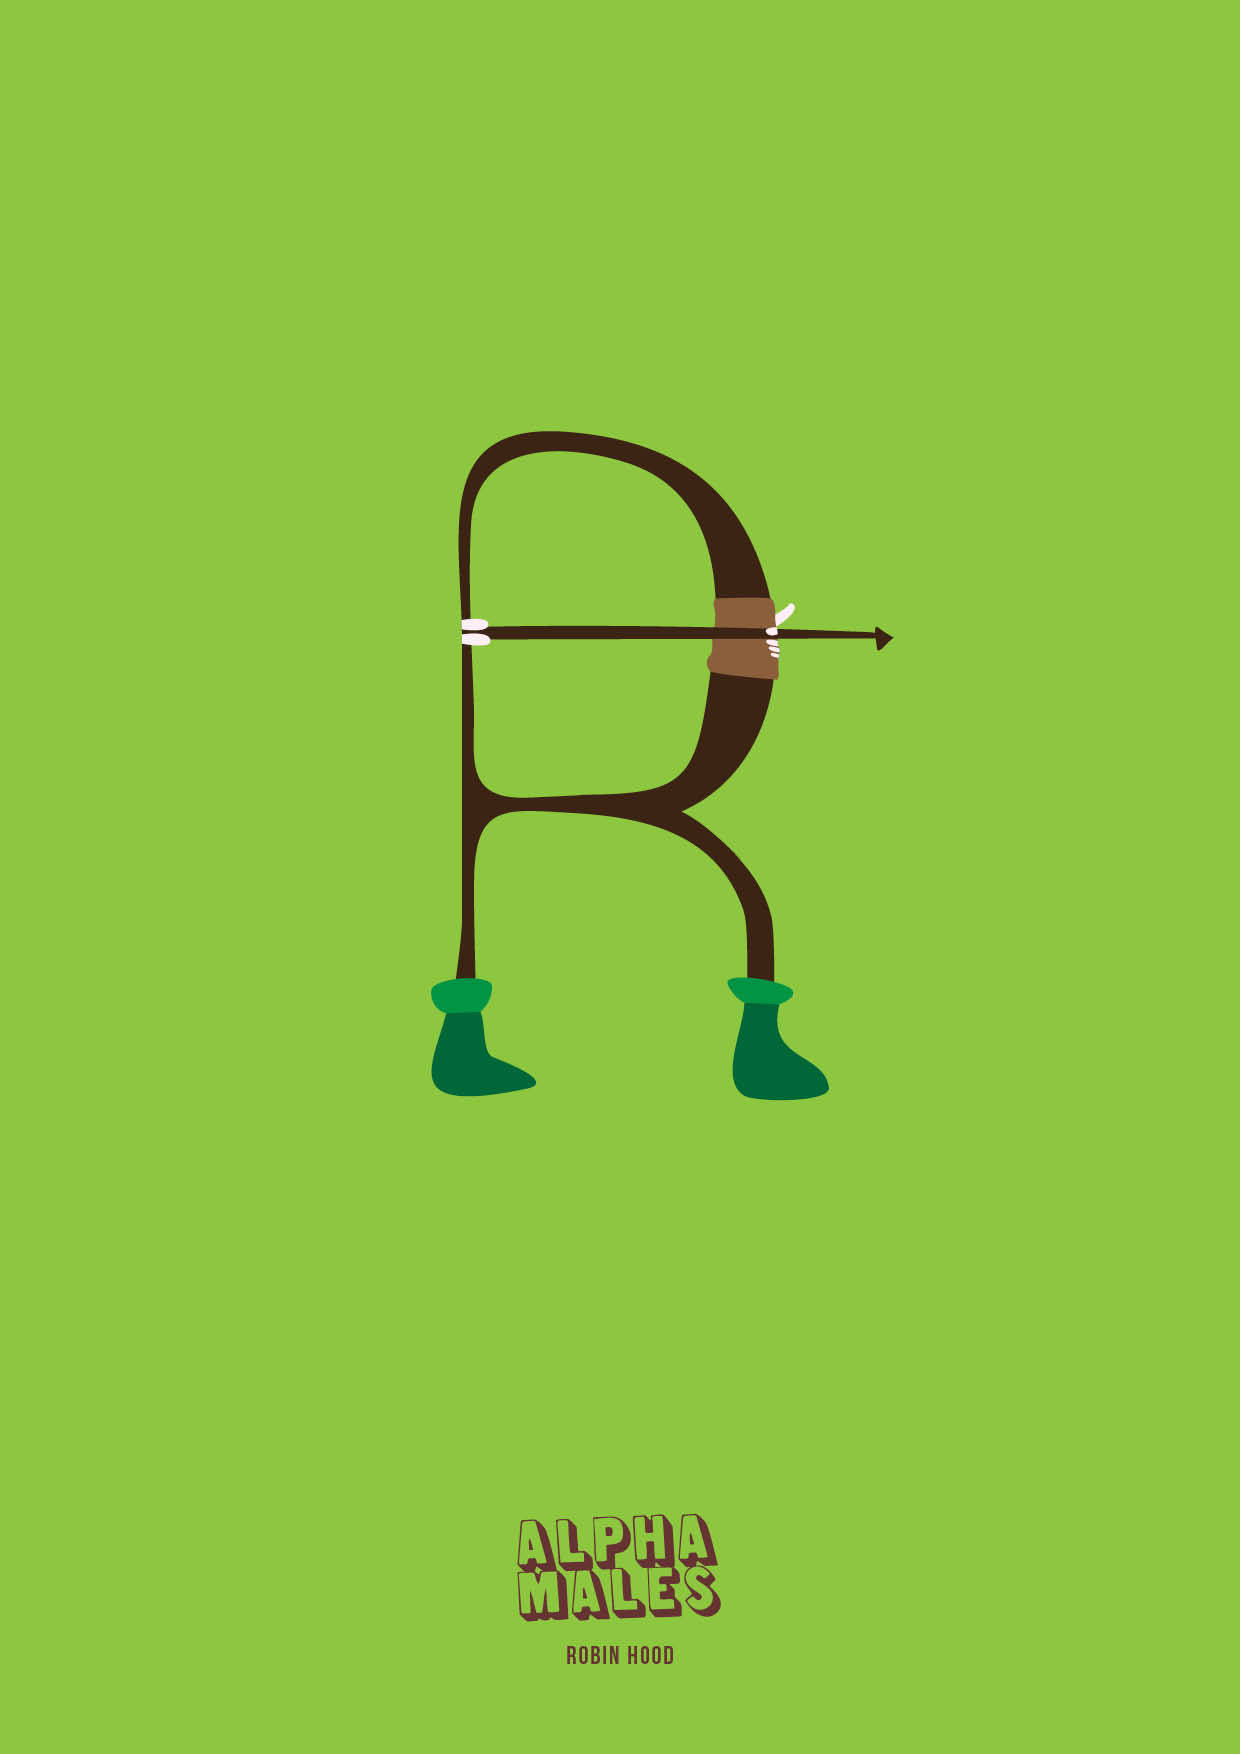 R is for Robin of the Hood. Cocky Sherwood alpha and all round man of the people. Pretty handy with a bow and arrow for a chap who wears tights. Buy prints at: http://www.artflakes.com/en/products/alpha-males-robin-hood